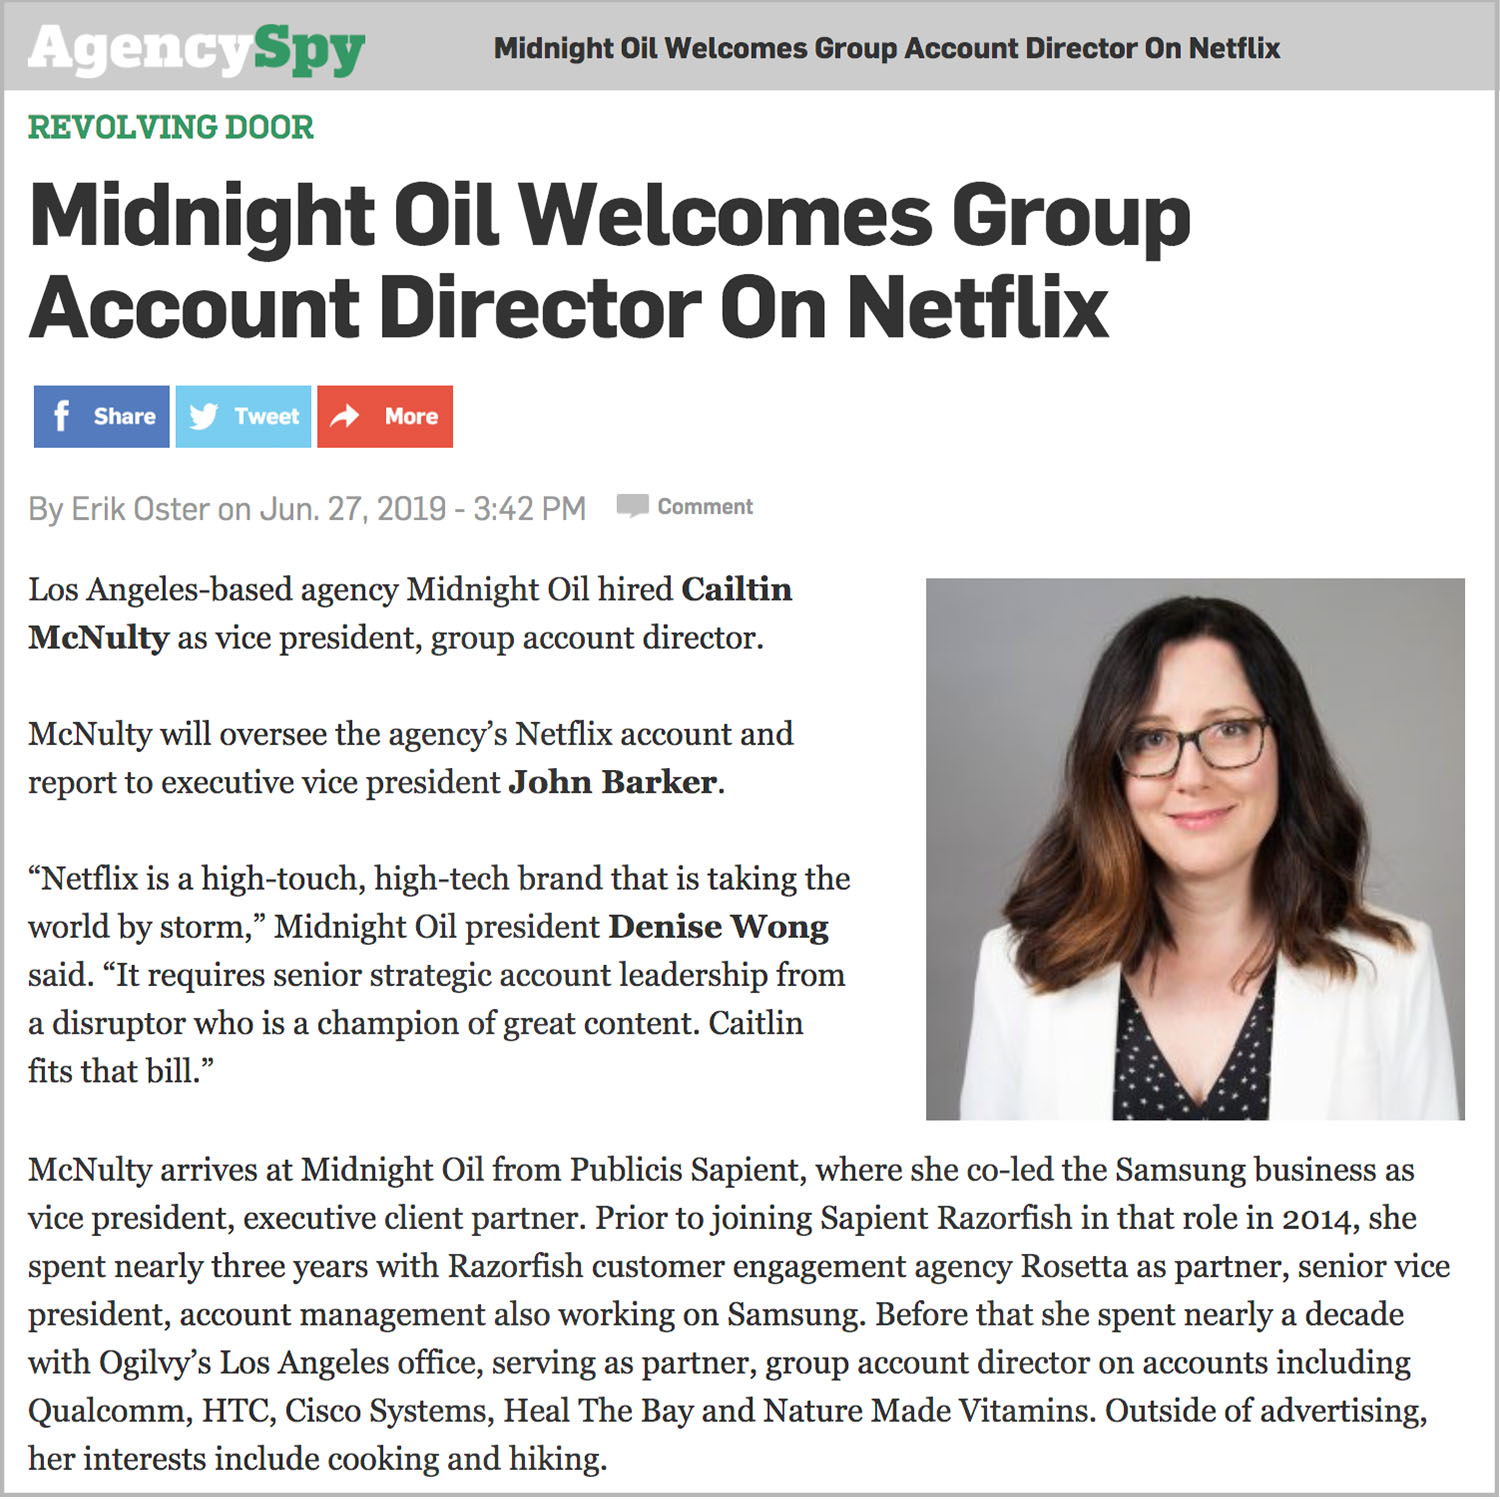 Caitlin McNulty Joins Midnight Oil as VP, Group Account Director